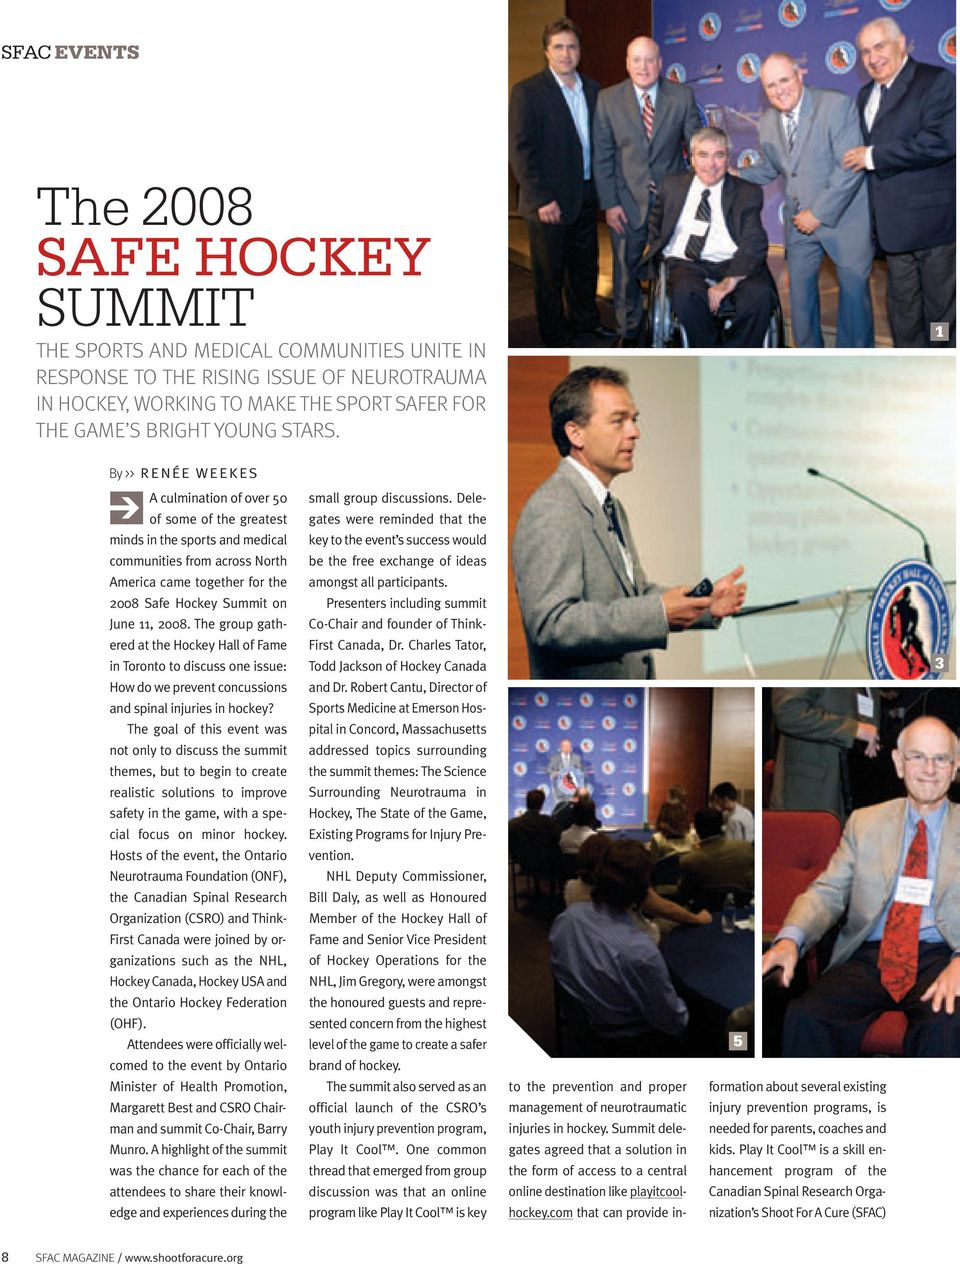 1 By >> R E N É E W E E K E S A culmination of over 50 of of some of the greatest minds in the sports and medical communities from across North America came together for the 2008 Safe Hockey Summit